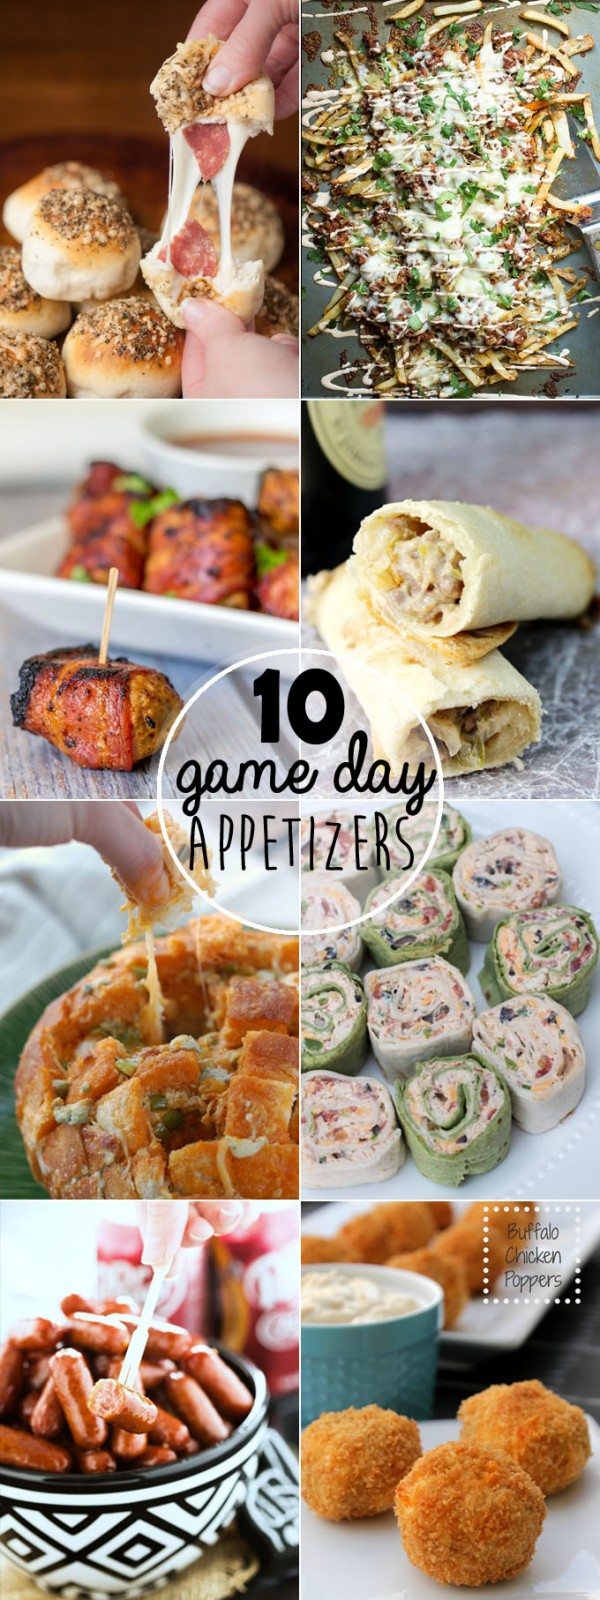 10 Game Day Appetizers - The best game day appetizers for your parties!